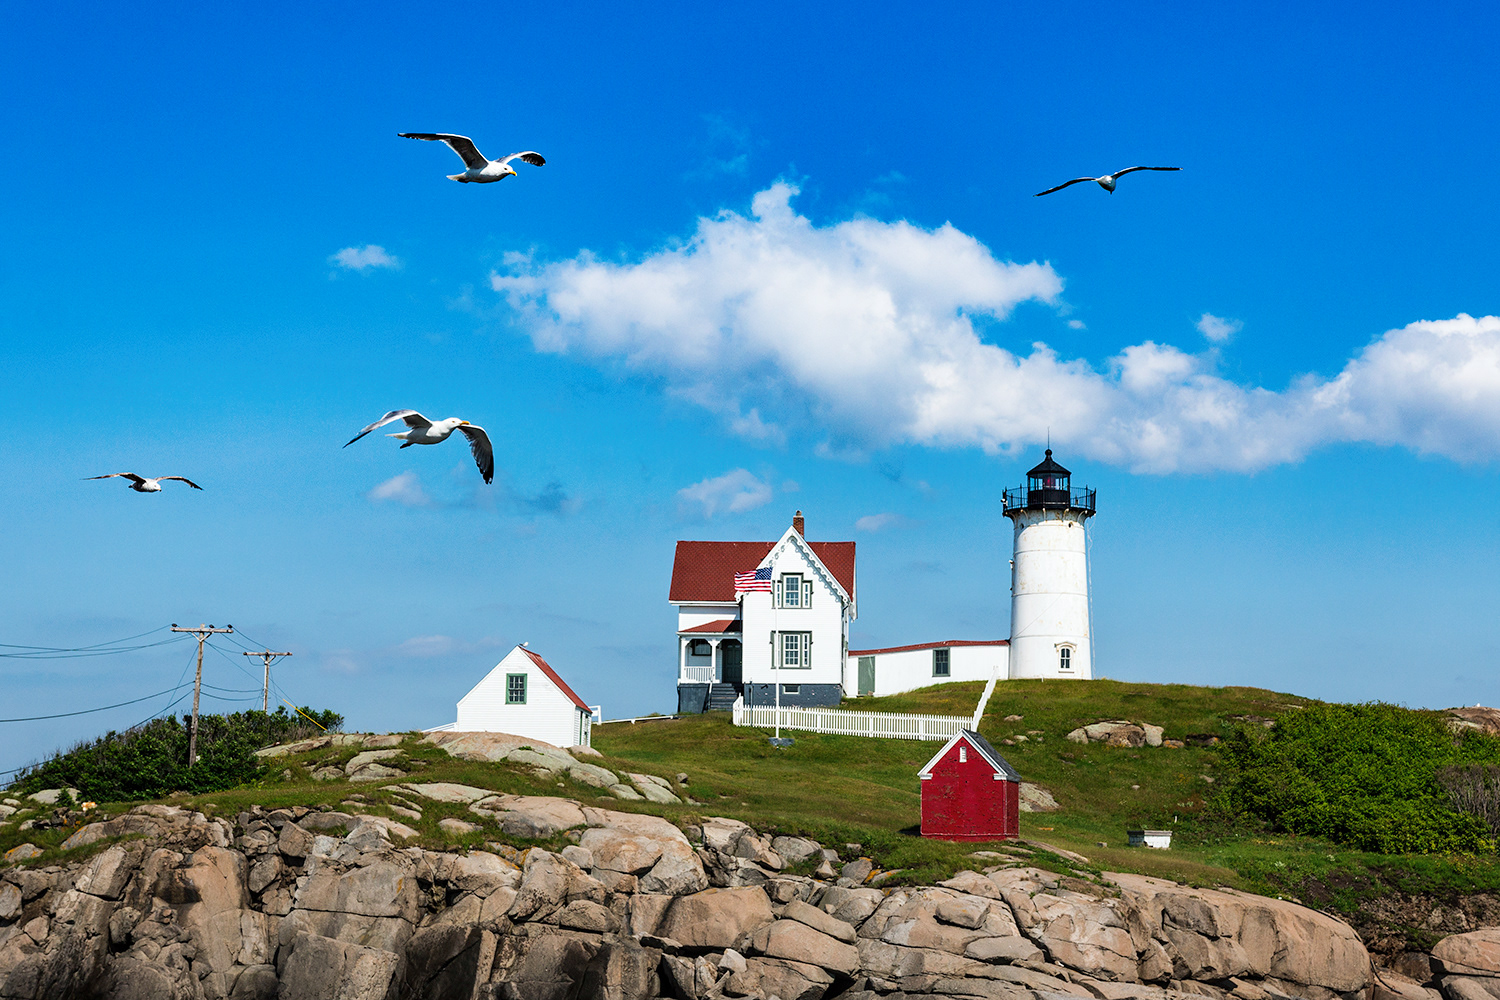 Barry Wills - York County Maine map with Nubble Lighthouse